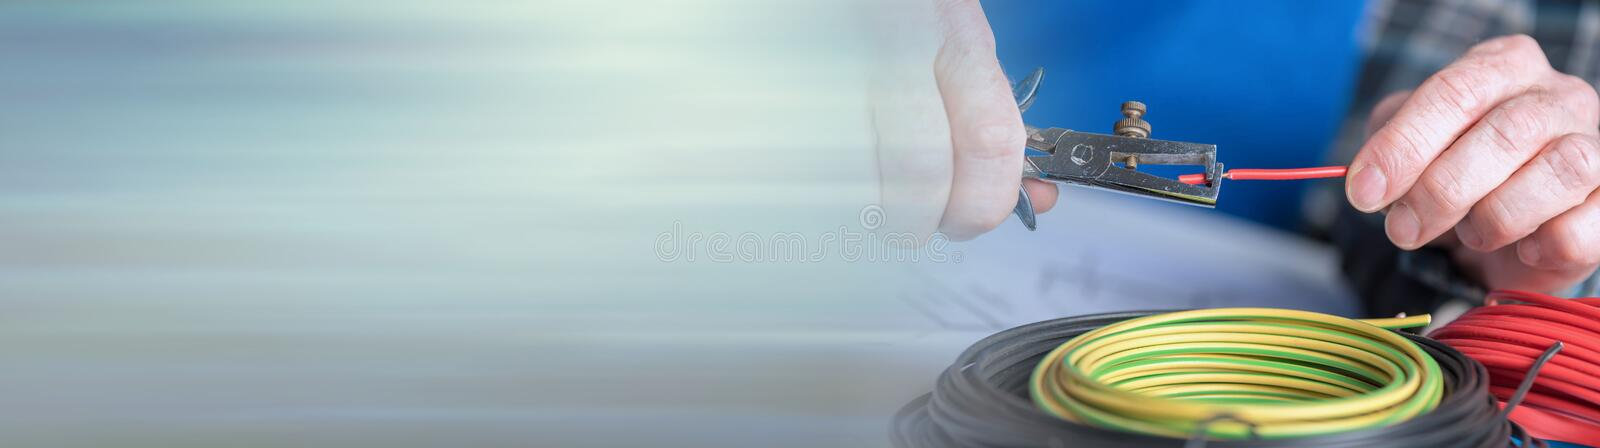 Electrician stripping a wire. panoramic banner royalty free stock image